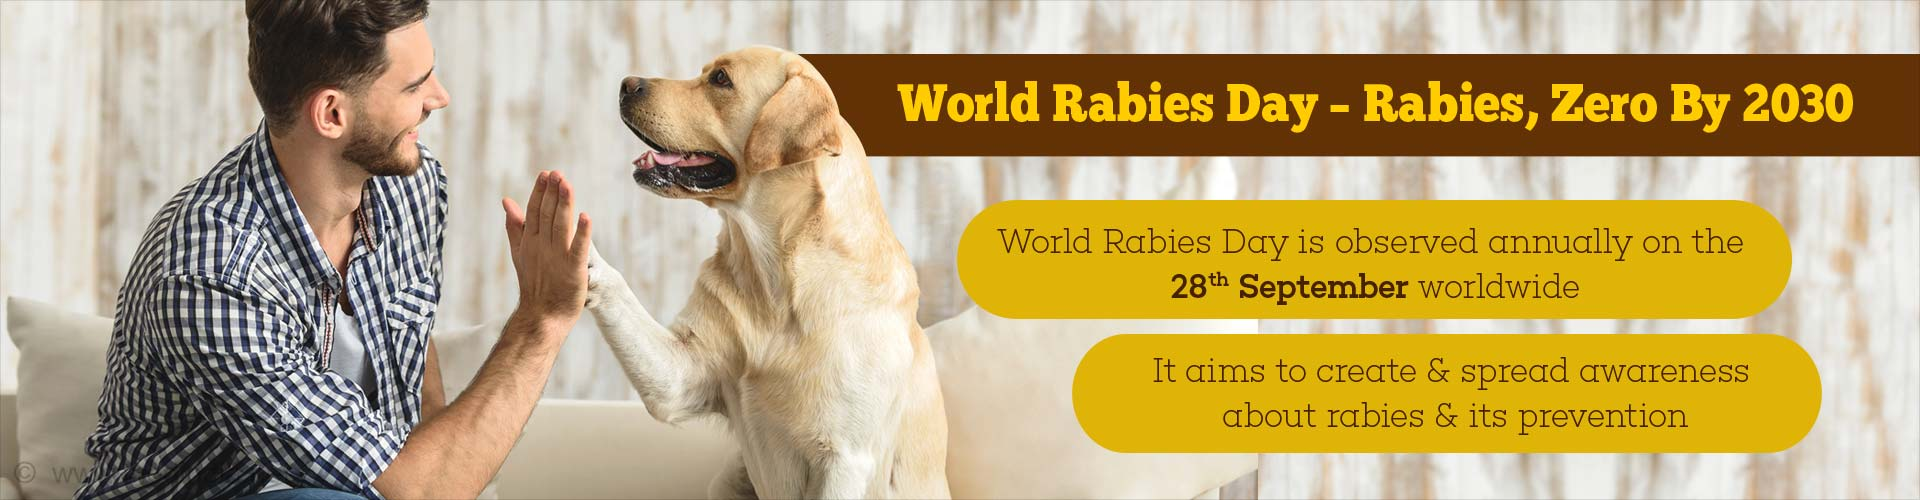 Rabies Can Be Prevented – World Rabies Day